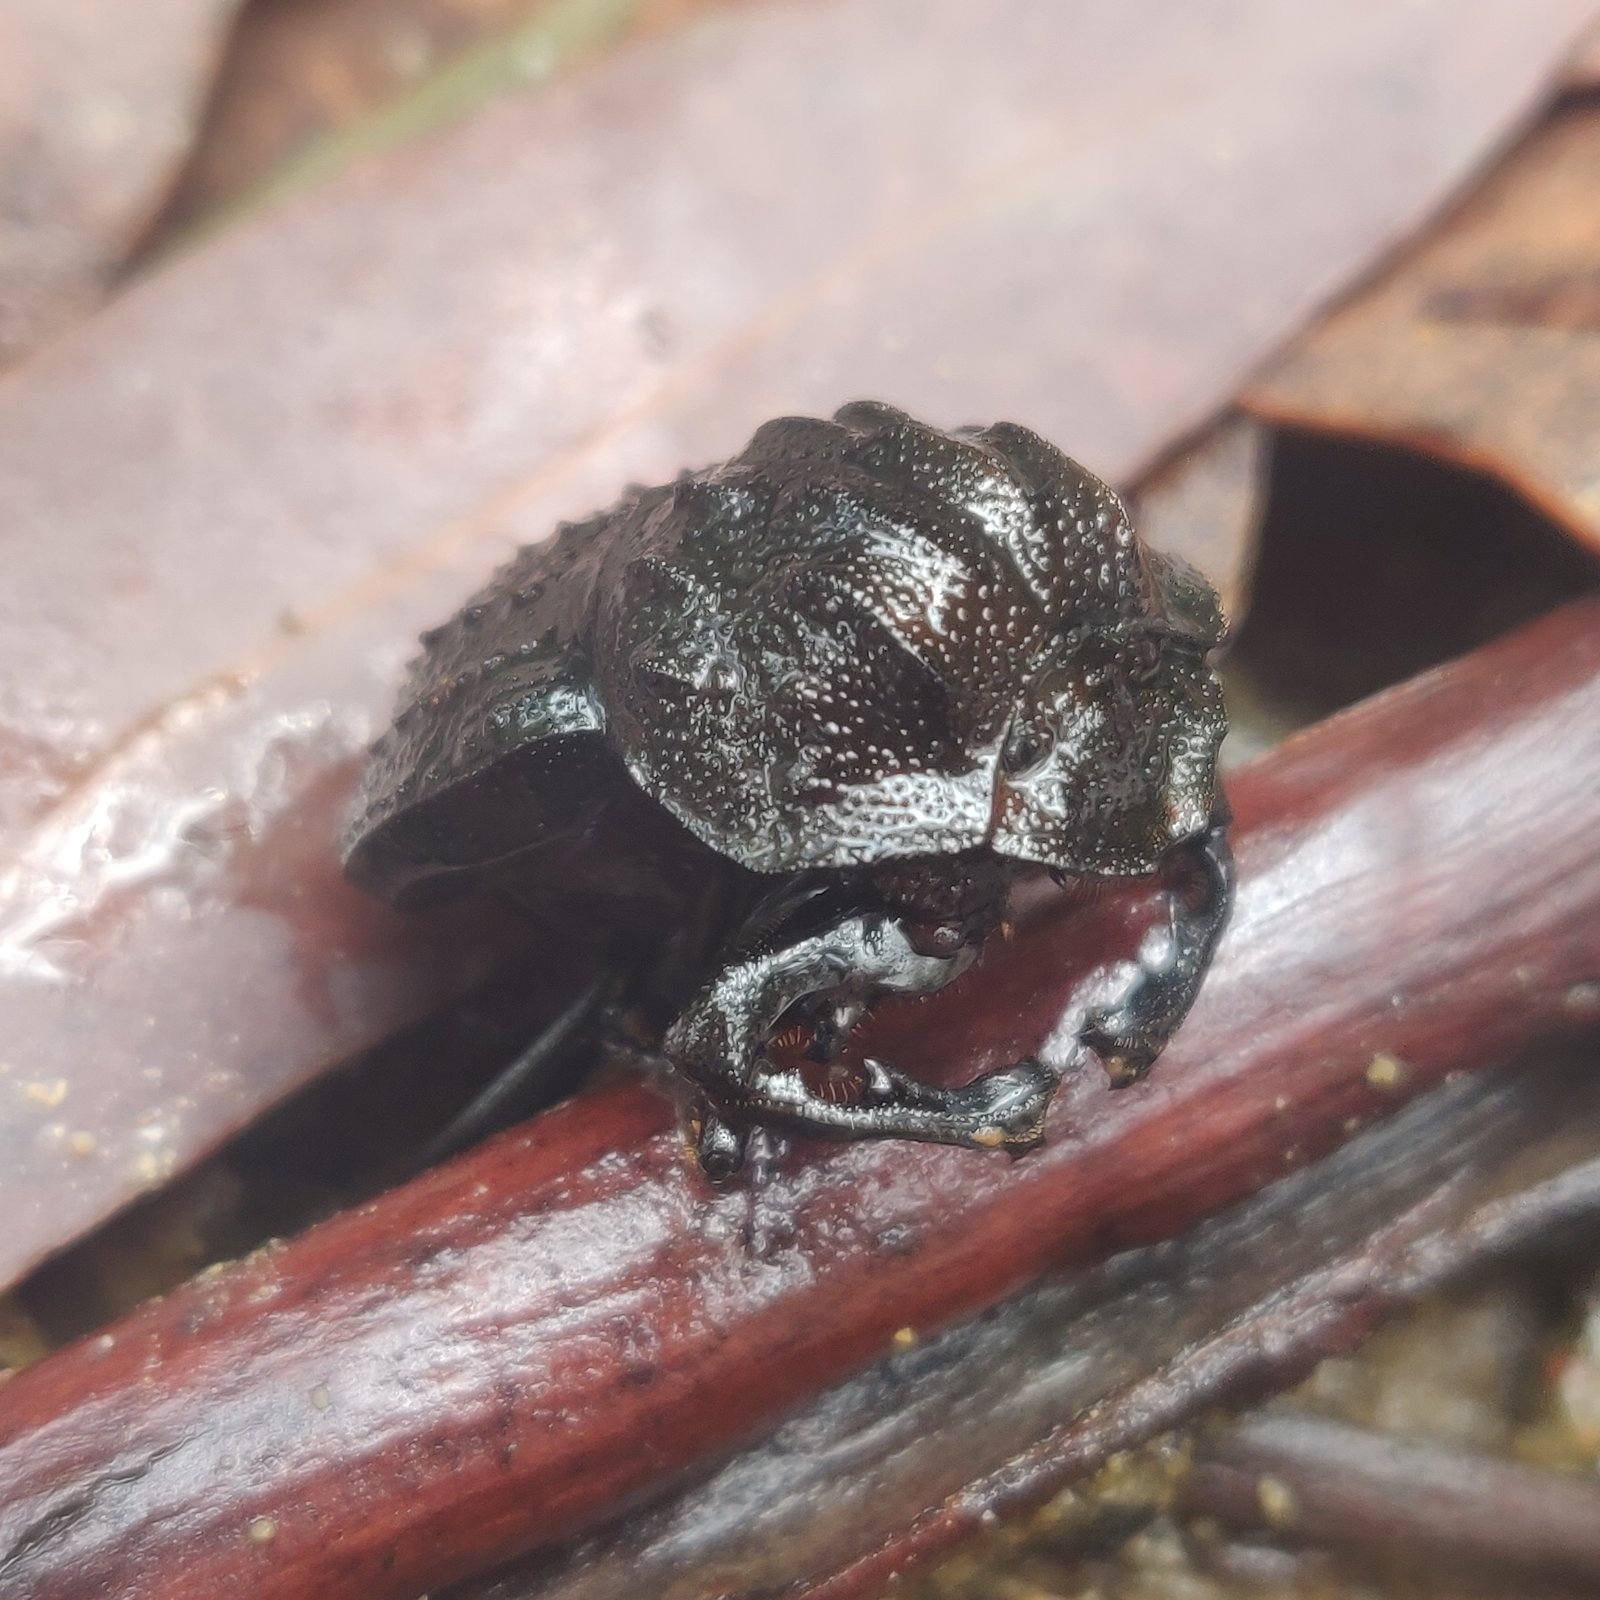 Australia's largest native dung beetle, Aulacopris maximus, one of our target species, collected at Washpool NP